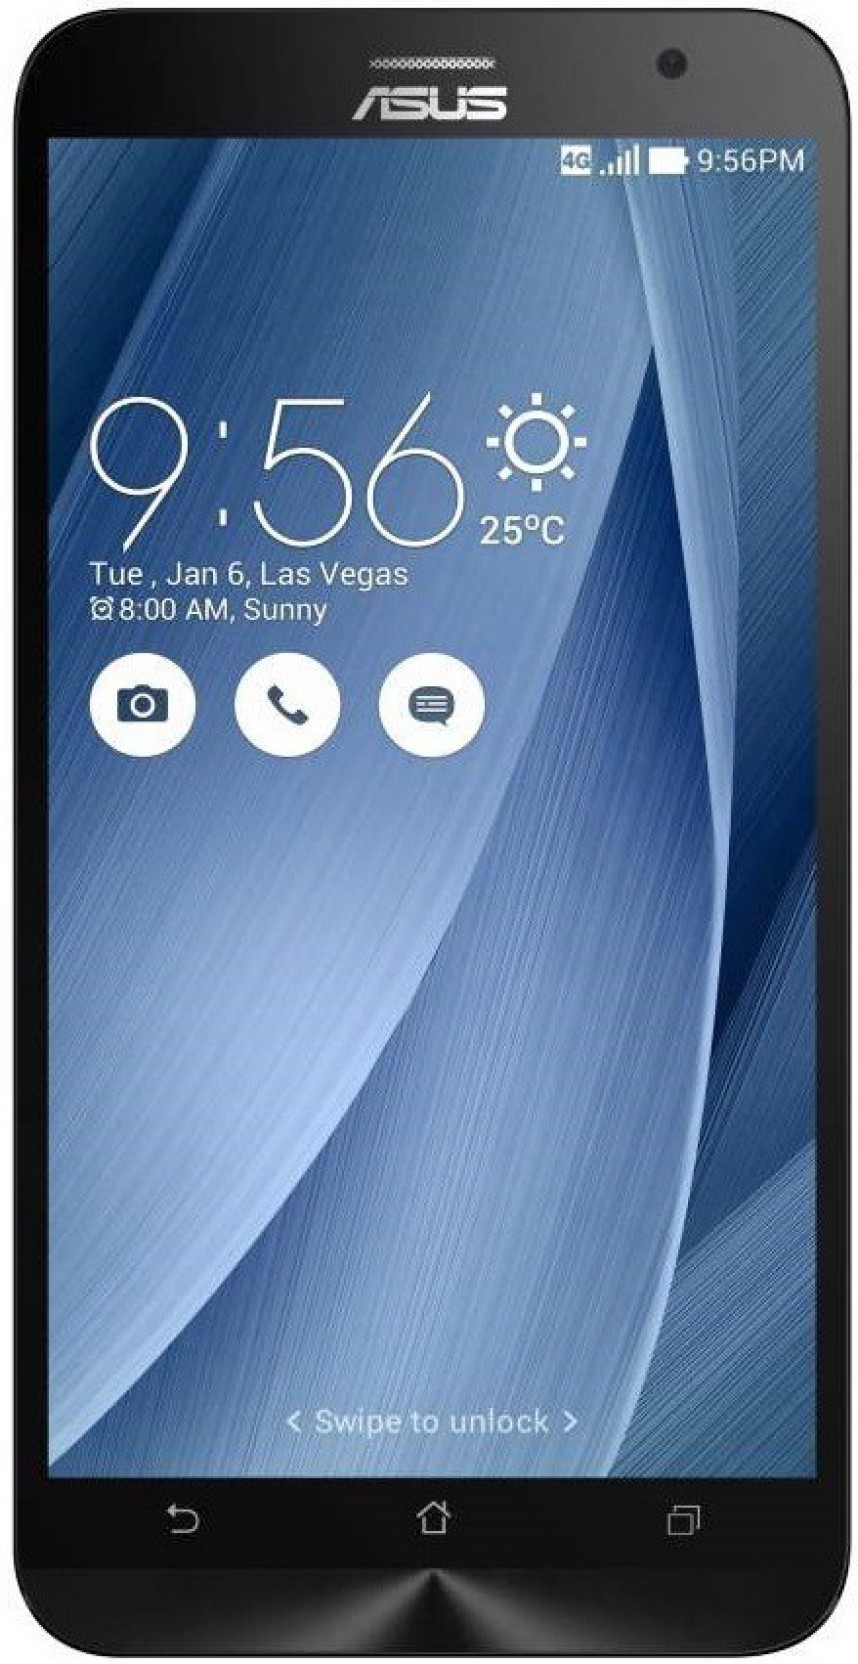 Asus Zenfone 2 Ze551ml Silver 64 Gb Online At Best Price Only On Ram4 32gb Add To Cart